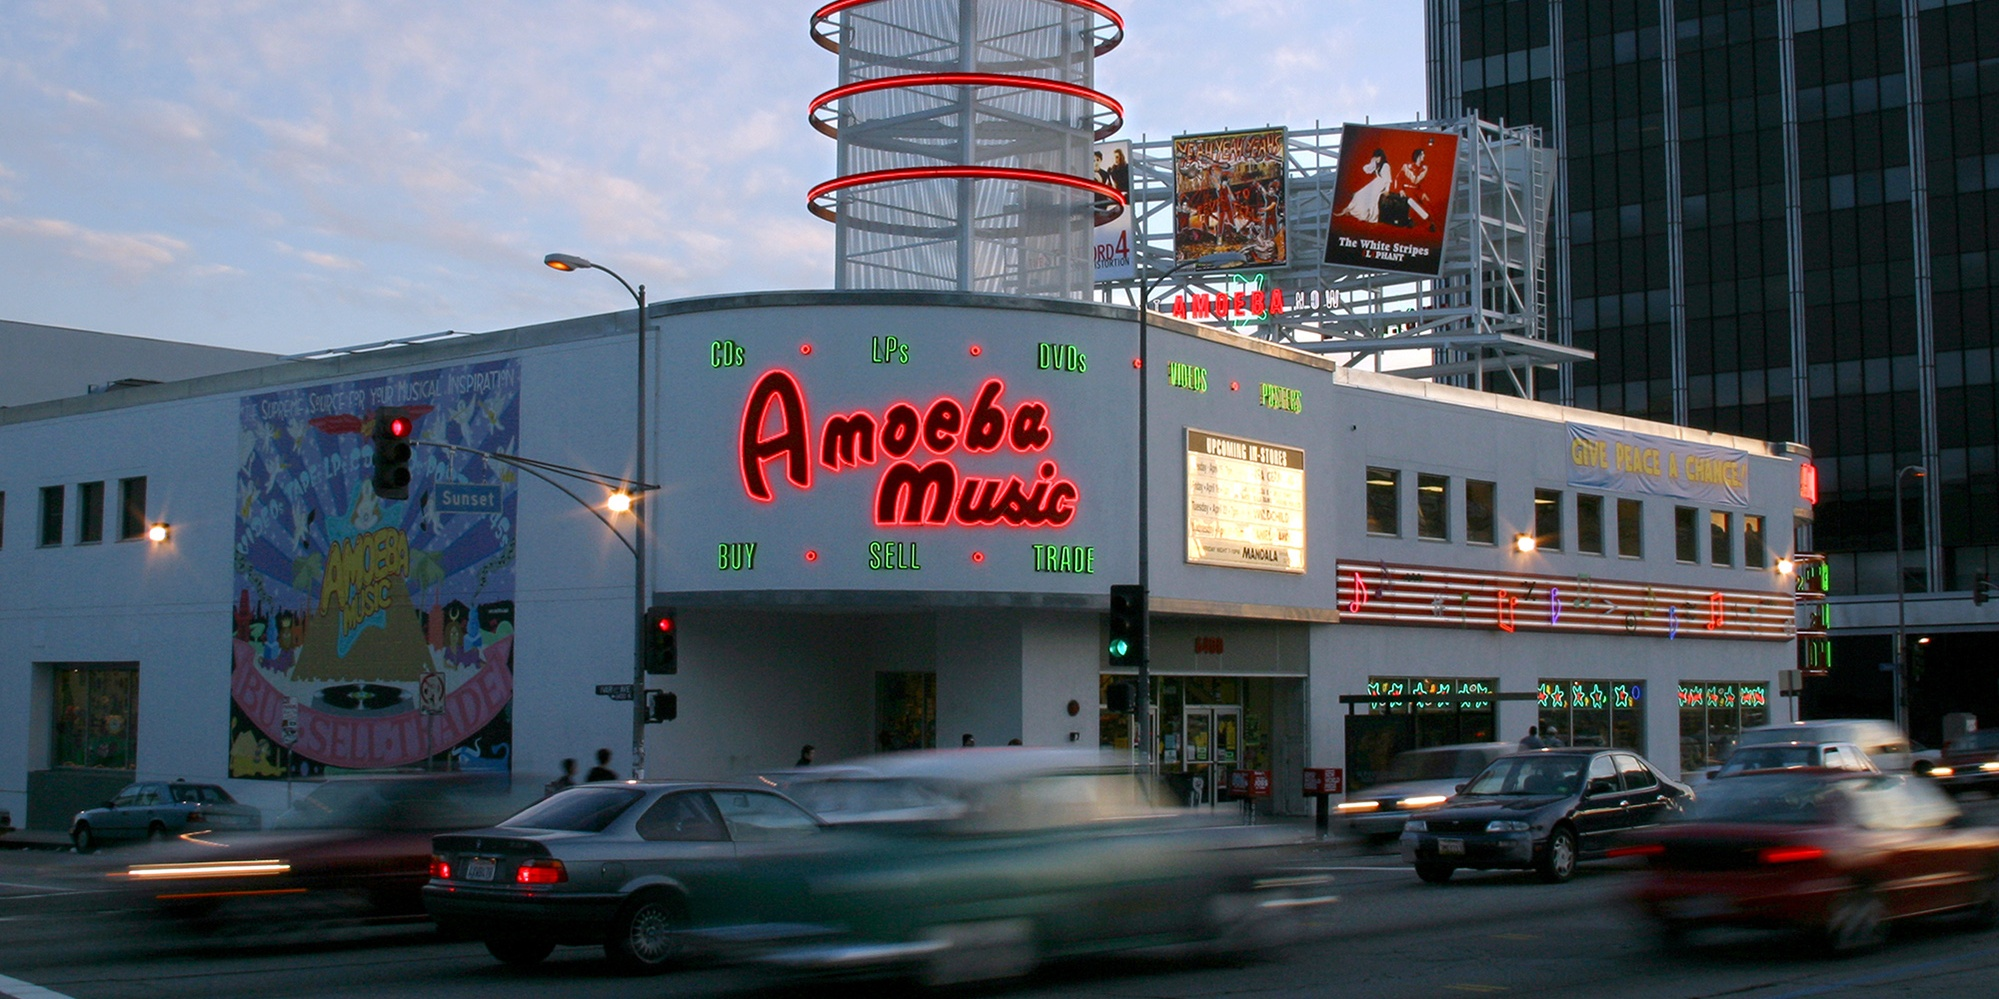 WATCH: Take a tour through one of the world's biggest music stores, Amoeba Music